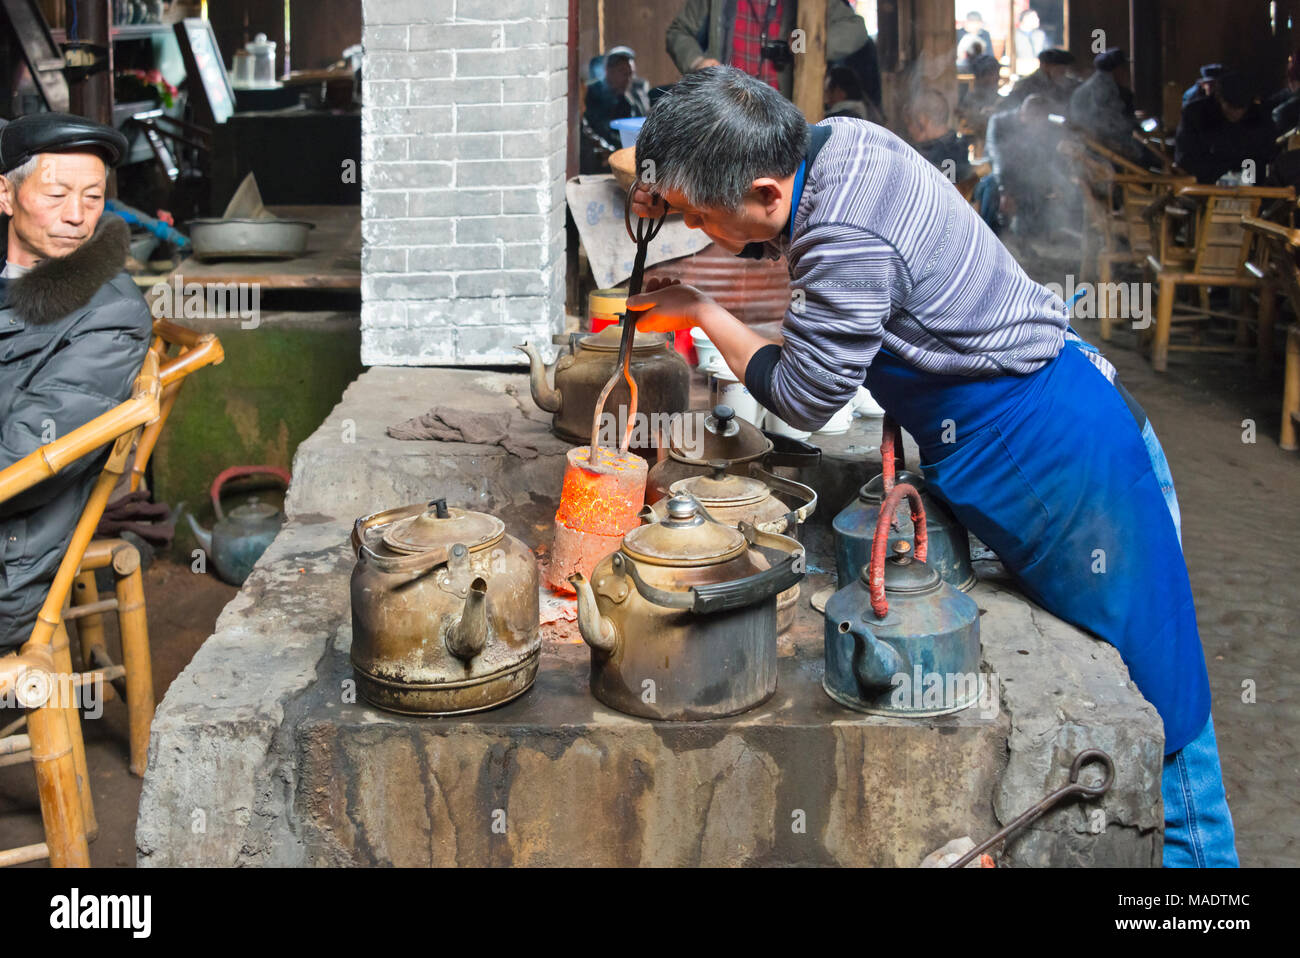 Changing coal briquette in the kitchen of an old tea house, Chengdu, Sichuan Province, China - Stock Image